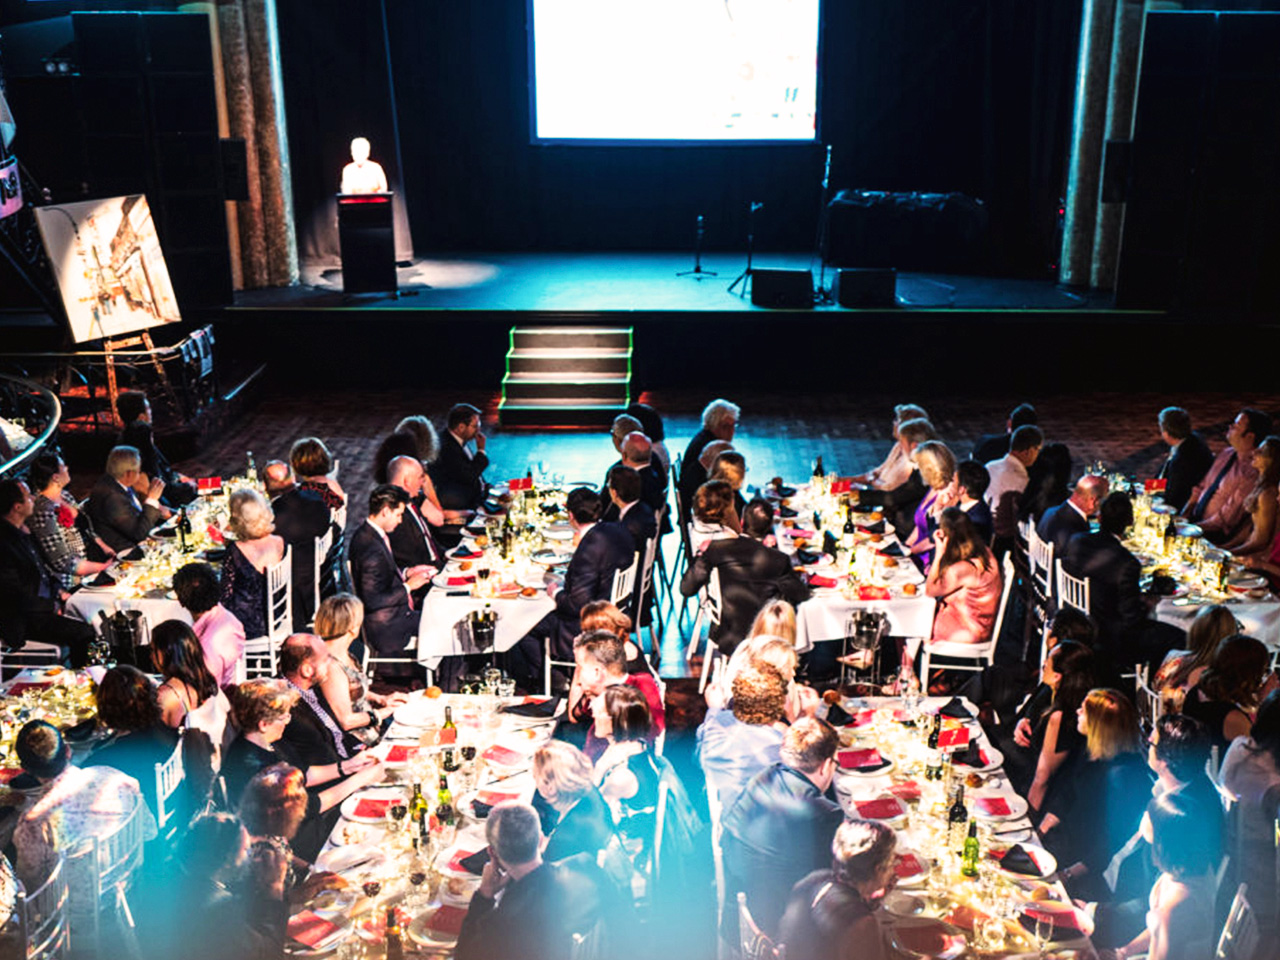 Presentation on stage with long table setting